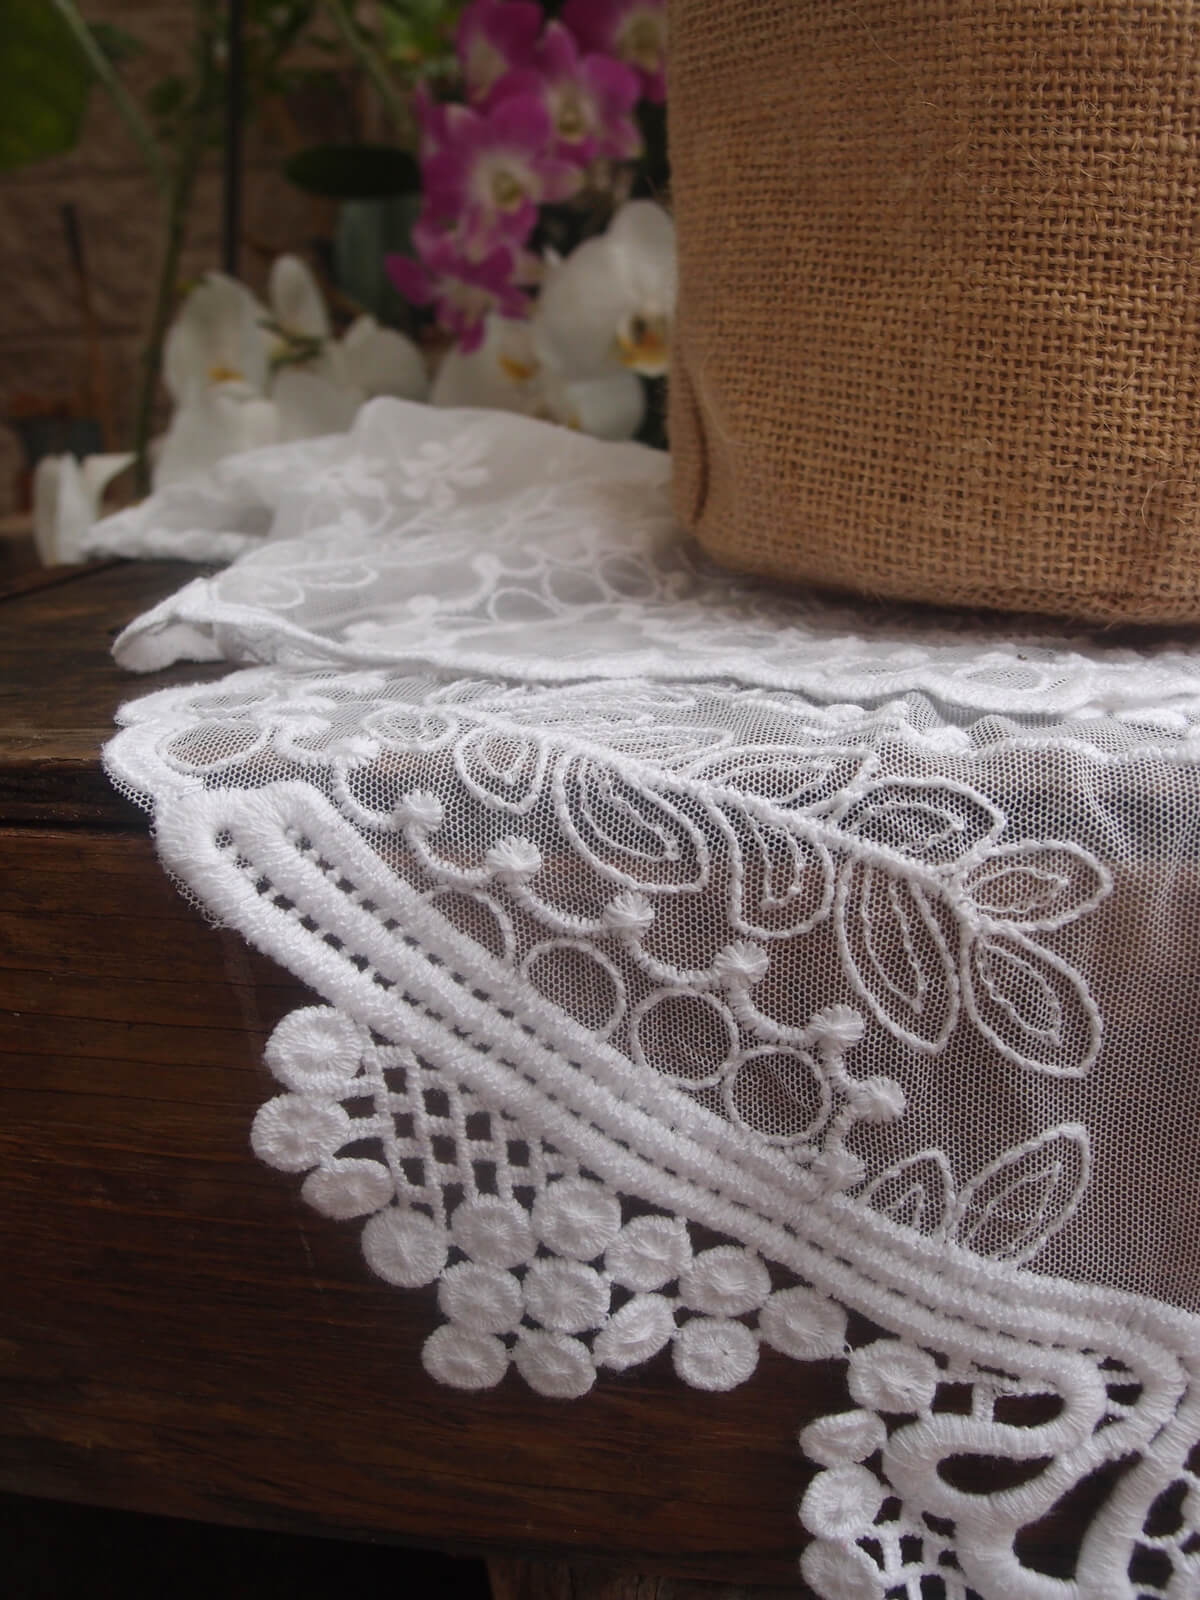 White Soft Embroidered Lace Amp Tulle 12in Runner And Chair